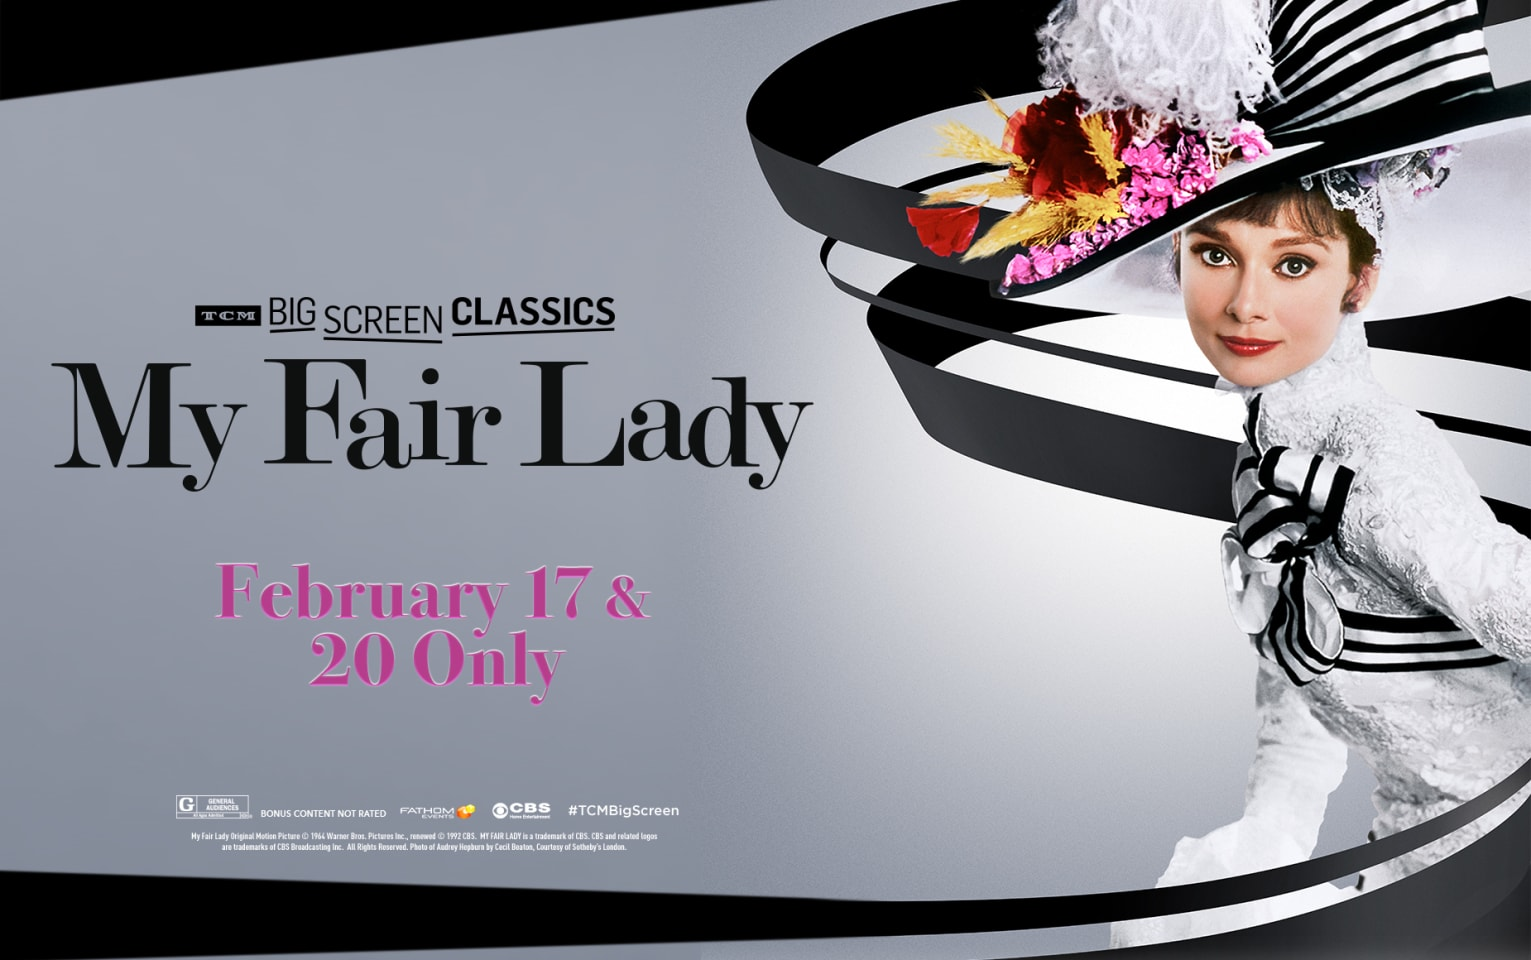 My Fair Lady 55th Anniversary (1964) presented by TCM Poster 1